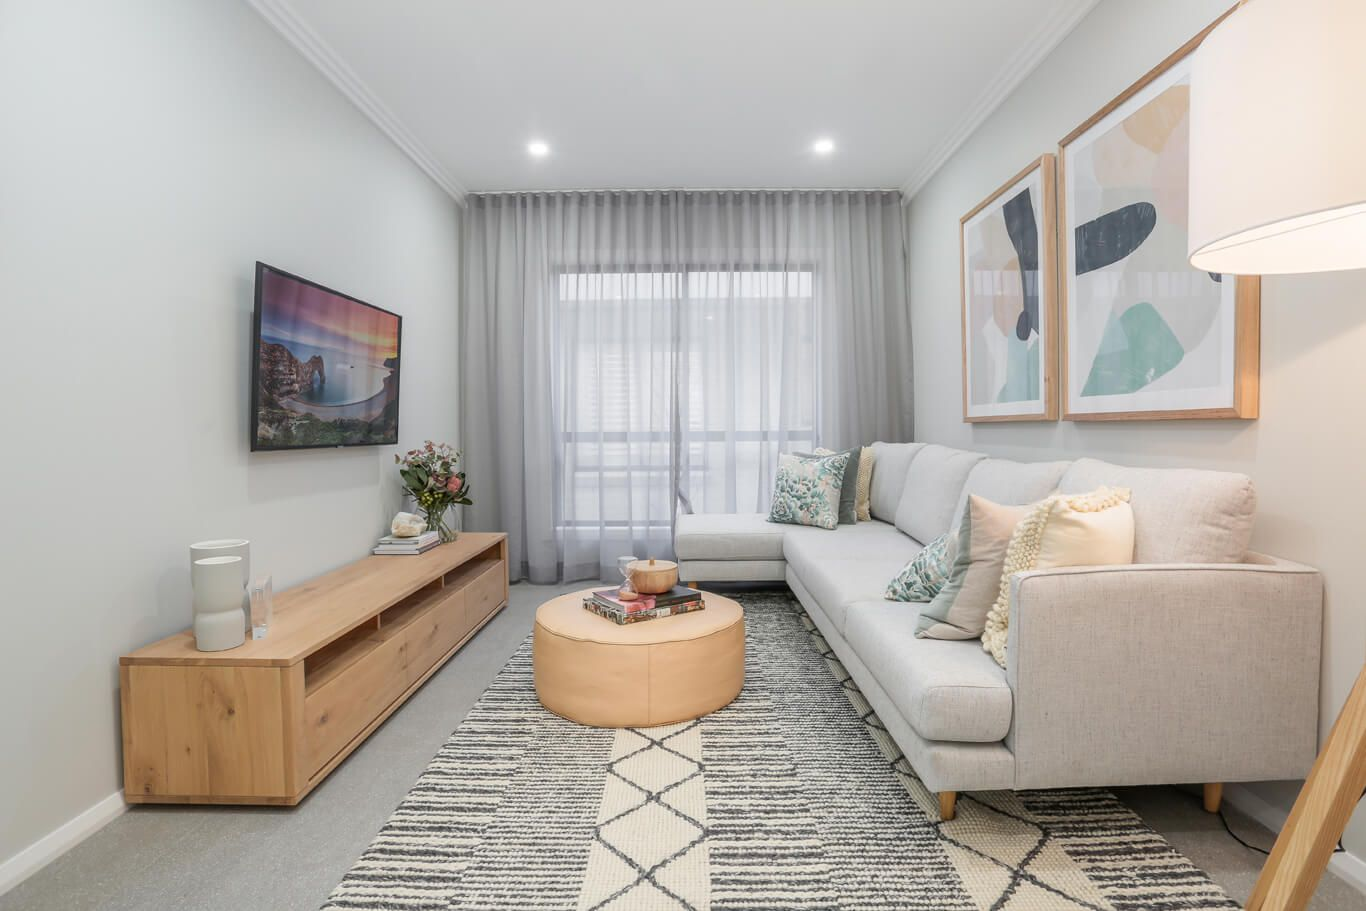 This Is A 3m X 4m Living Room Similar Layout To The Kids Living Room But Shorter Tv Wall Spa Luxury Living Room Design Living Room Decor Apartment Lounge Room X living room ideas